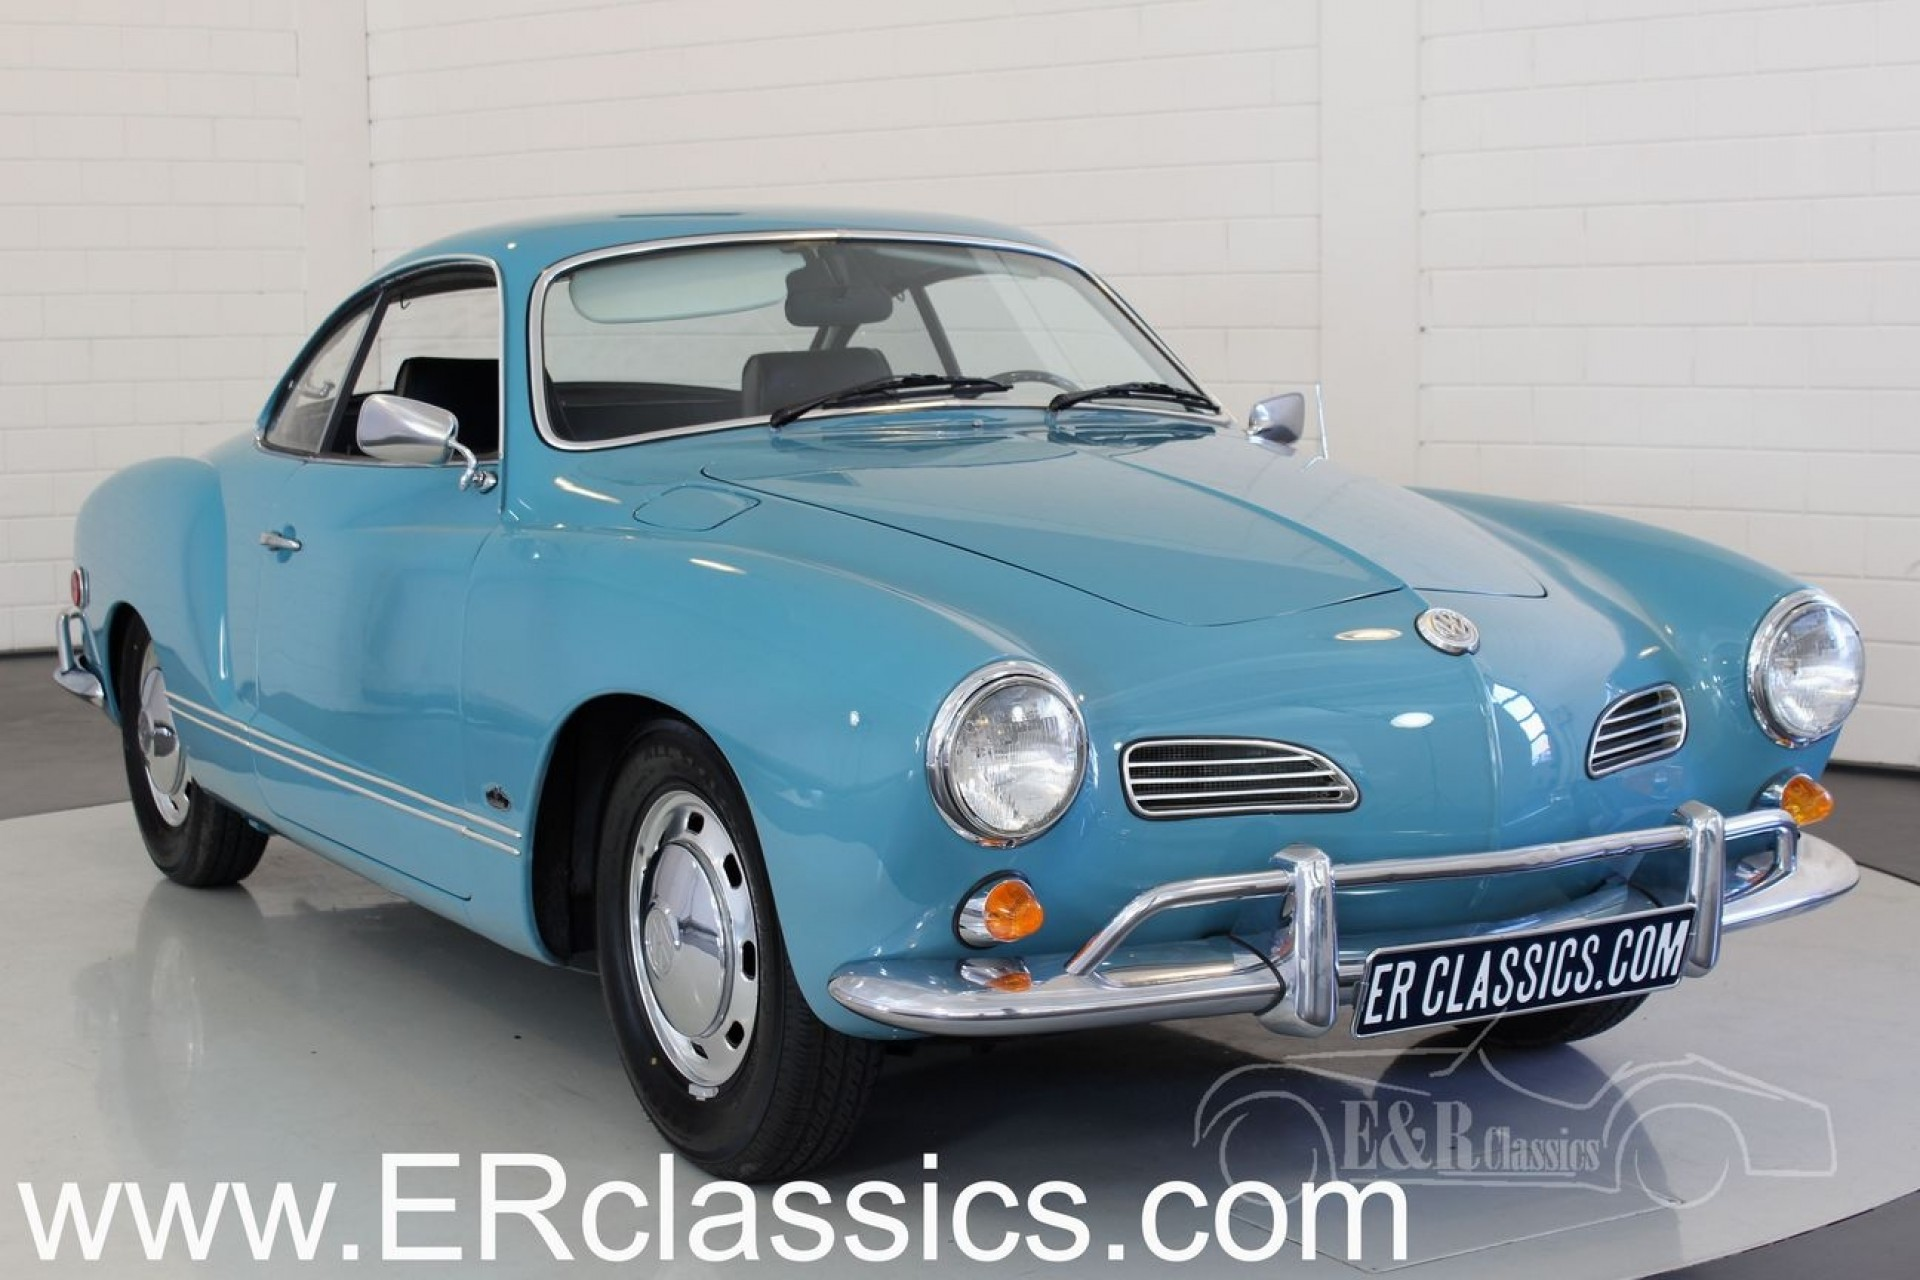 vw karmann ghia coupe 1968 vendre erclassics. Black Bedroom Furniture Sets. Home Design Ideas